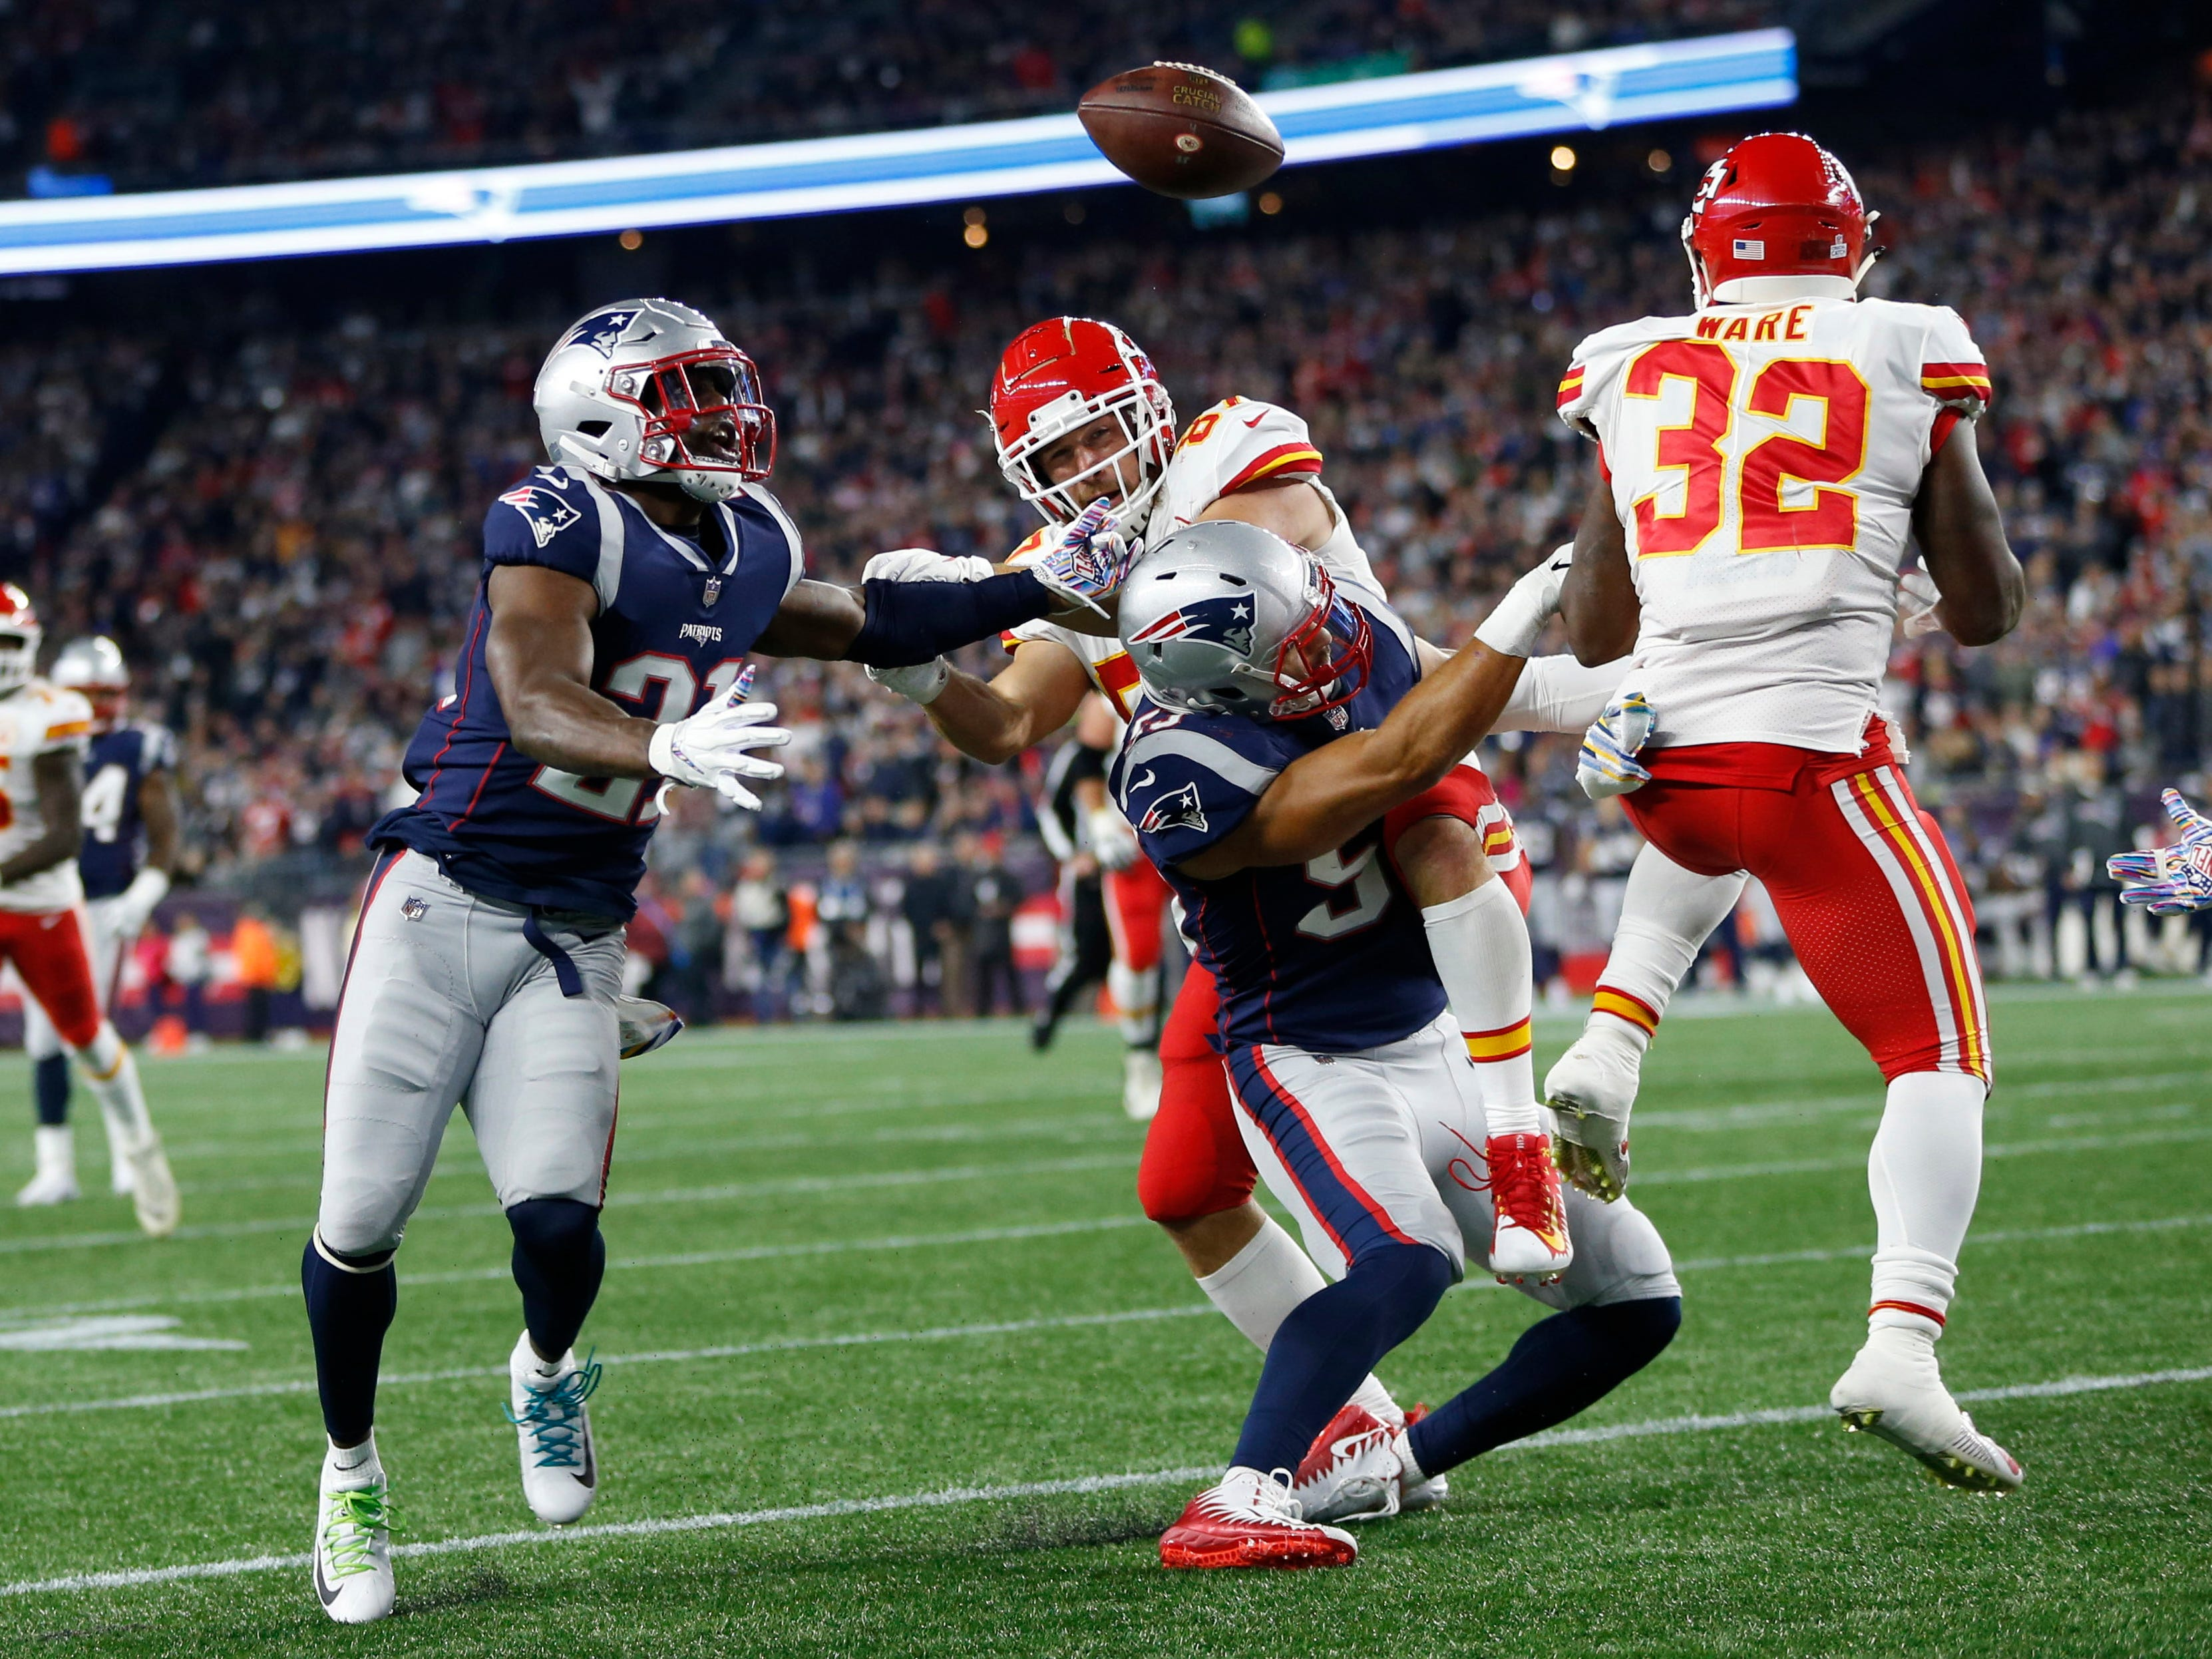 New England Patriots defensive back Duron Harmon (21) intercepts a tipped pass during the second quarter against the Kansas City Chiefs at Gillette Stadium.